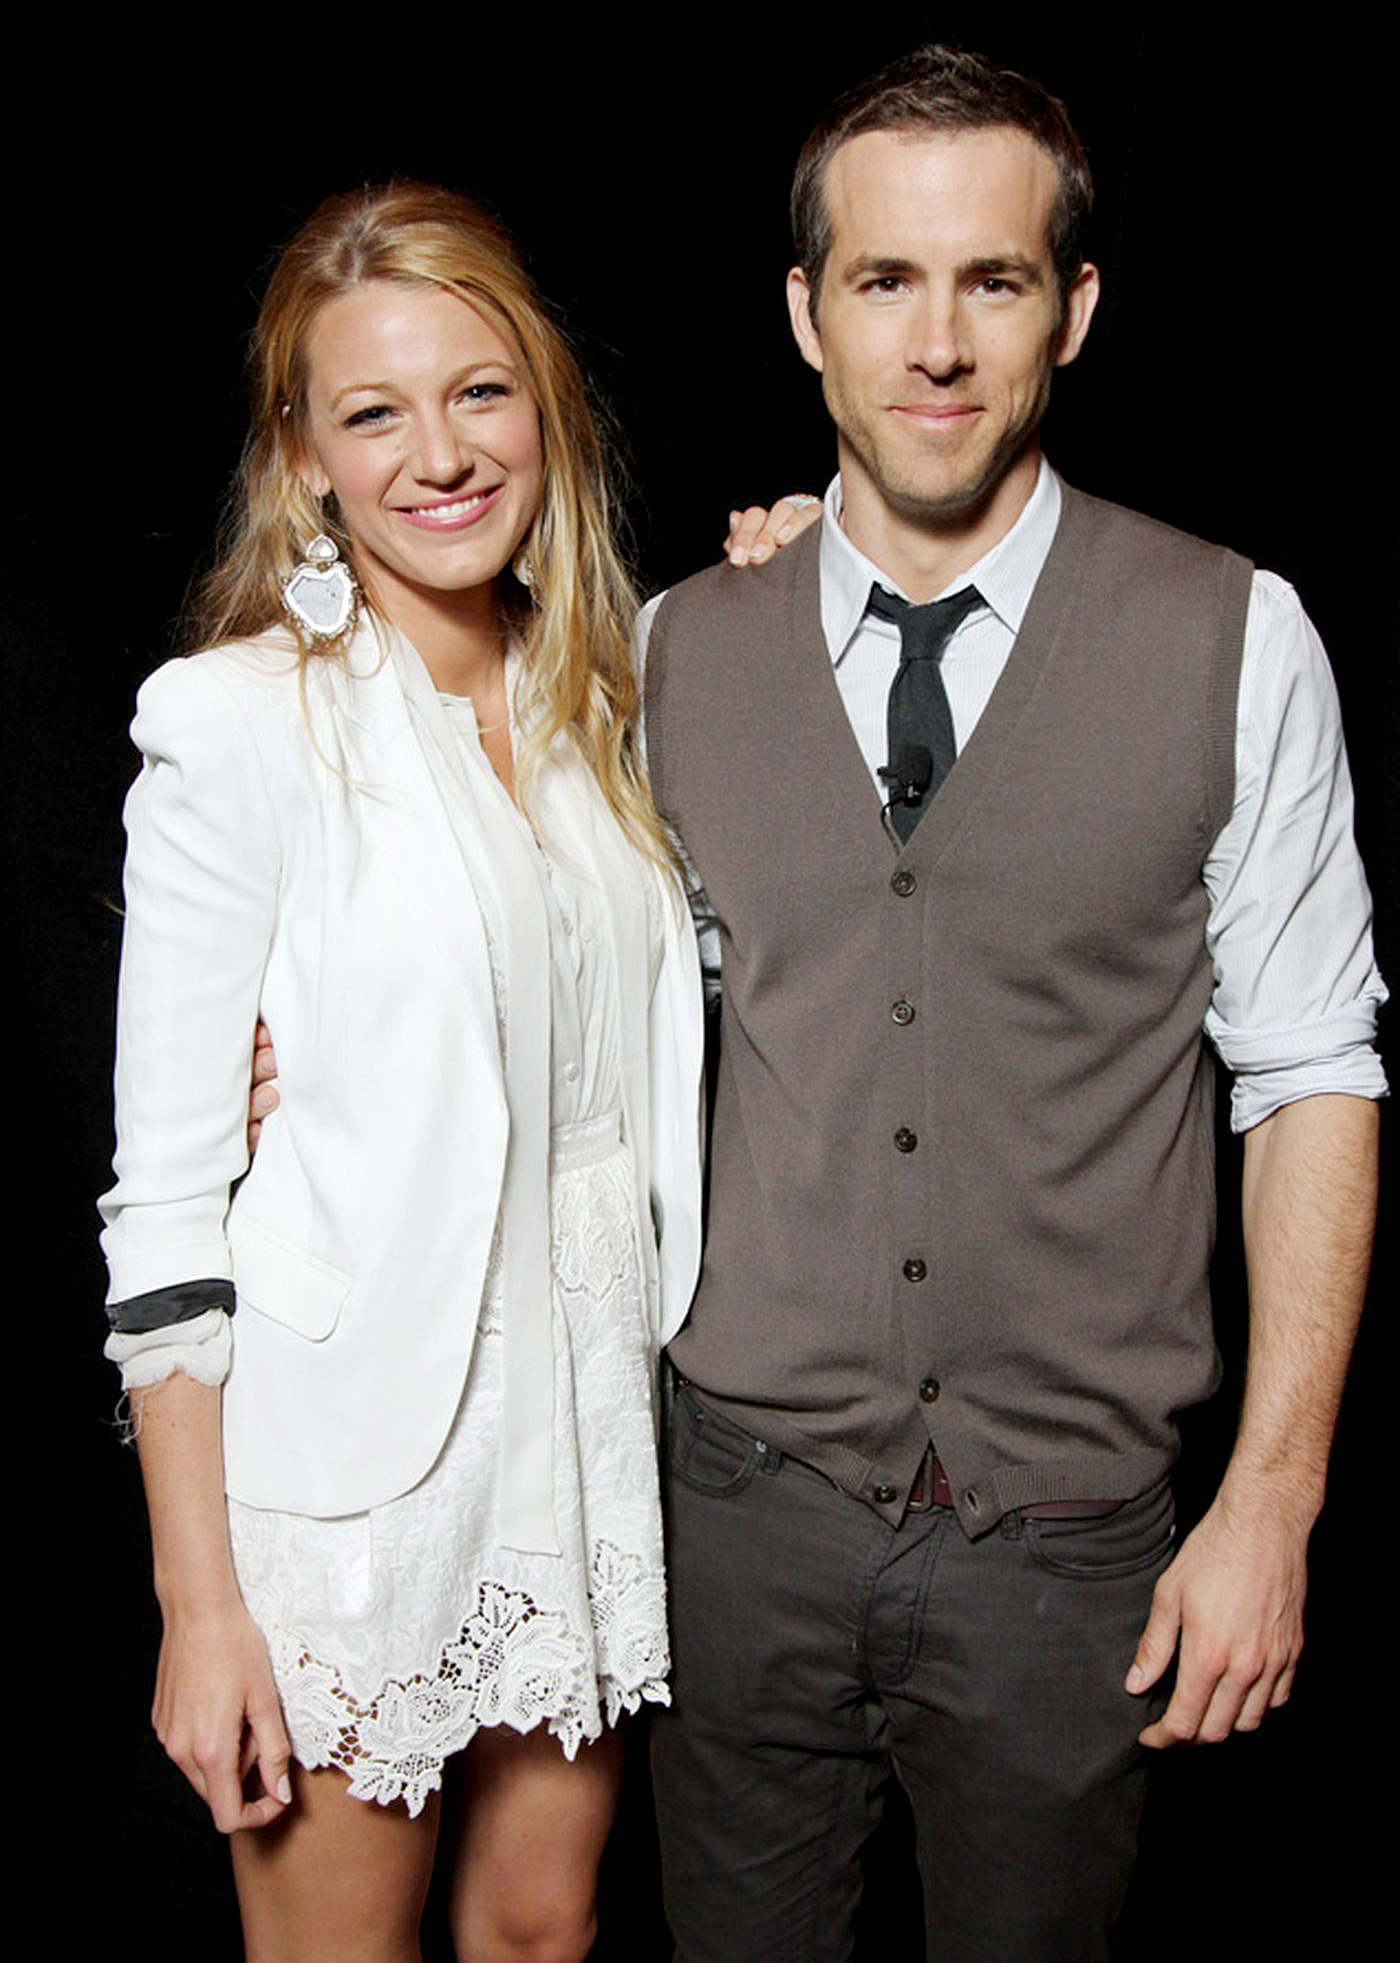 Blake-Lively-Ryan-Reynolds-March-31,-2011 - The costars posed for photographers at Warner Bros. Pictures Presentation of The Big Pictures 2011 at CinemaCon at Caesars Palace in Las Vegas, Nevada.